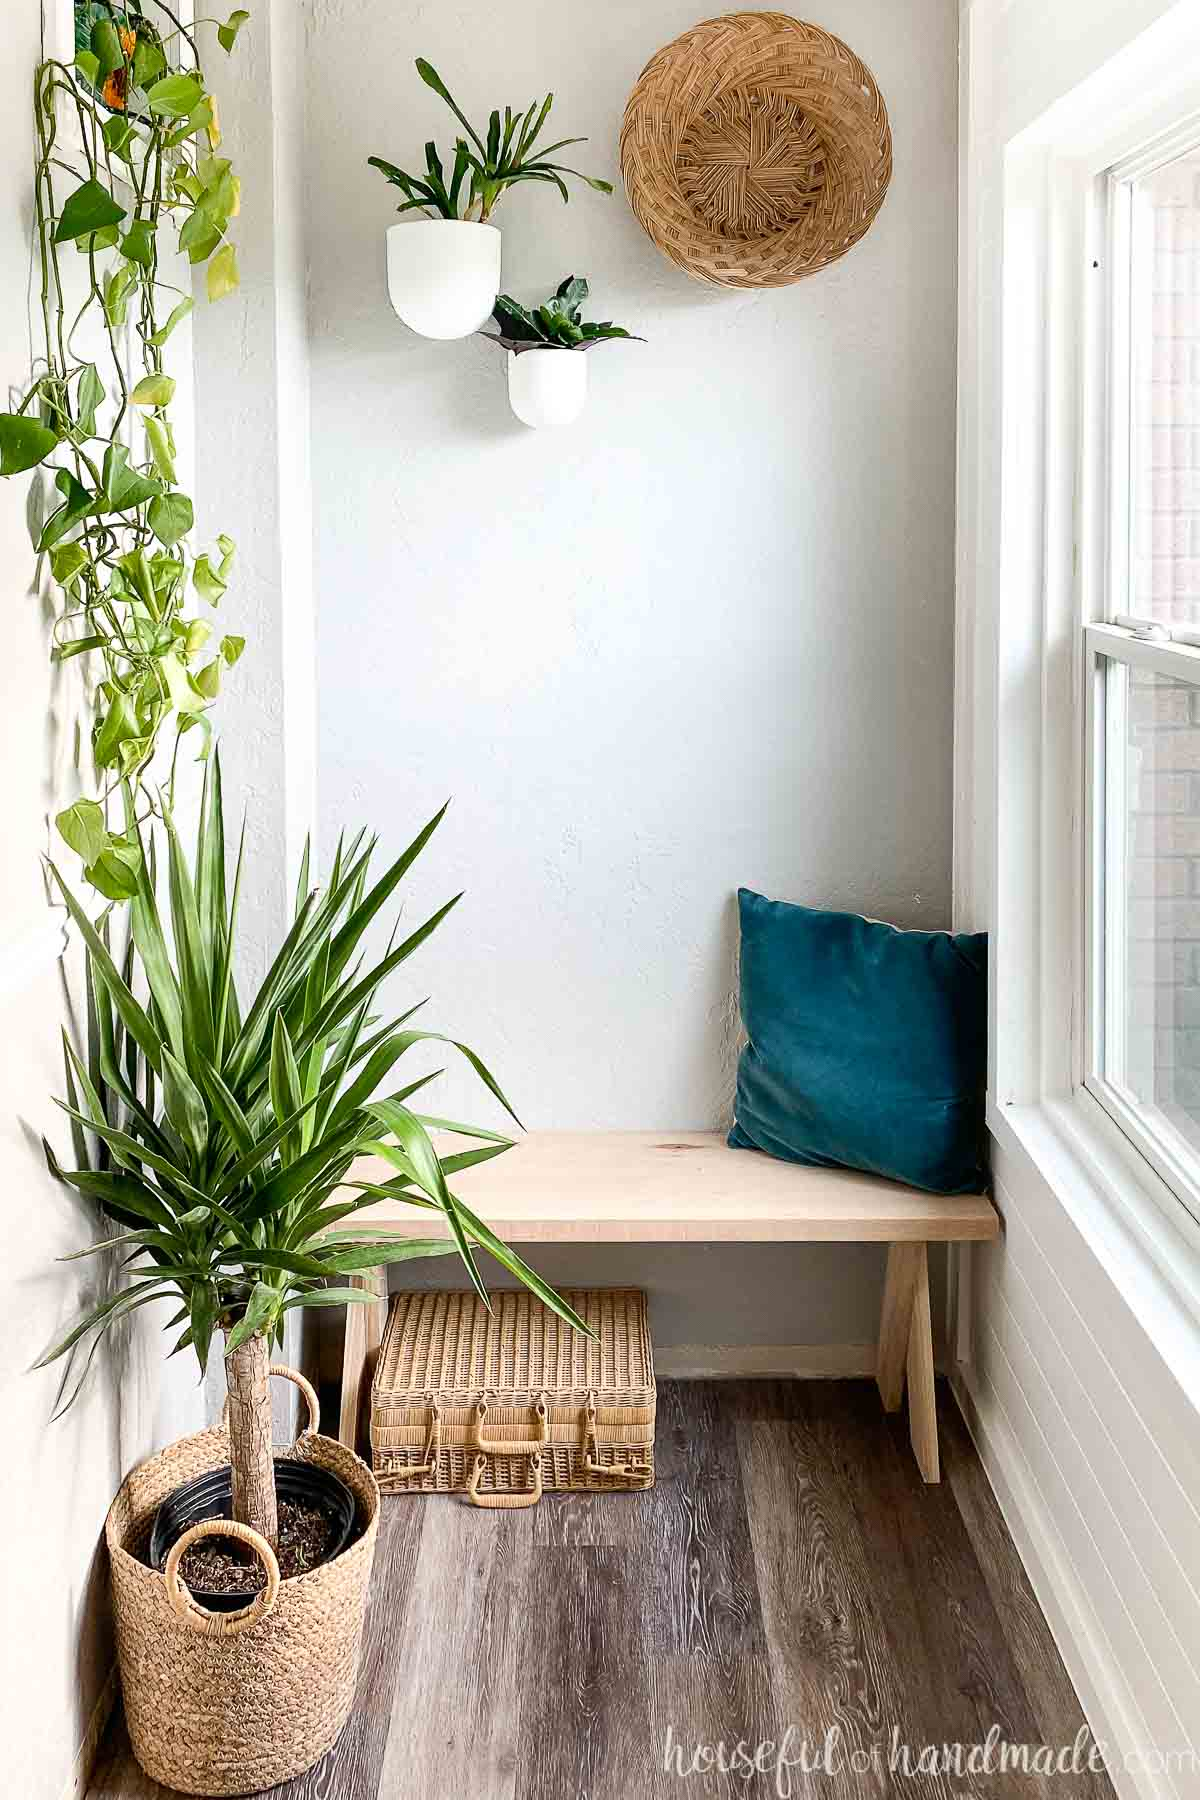 Entry nook with lots of houseplants hanging around the DIY bench with a wicker suitcase tucked underneath.